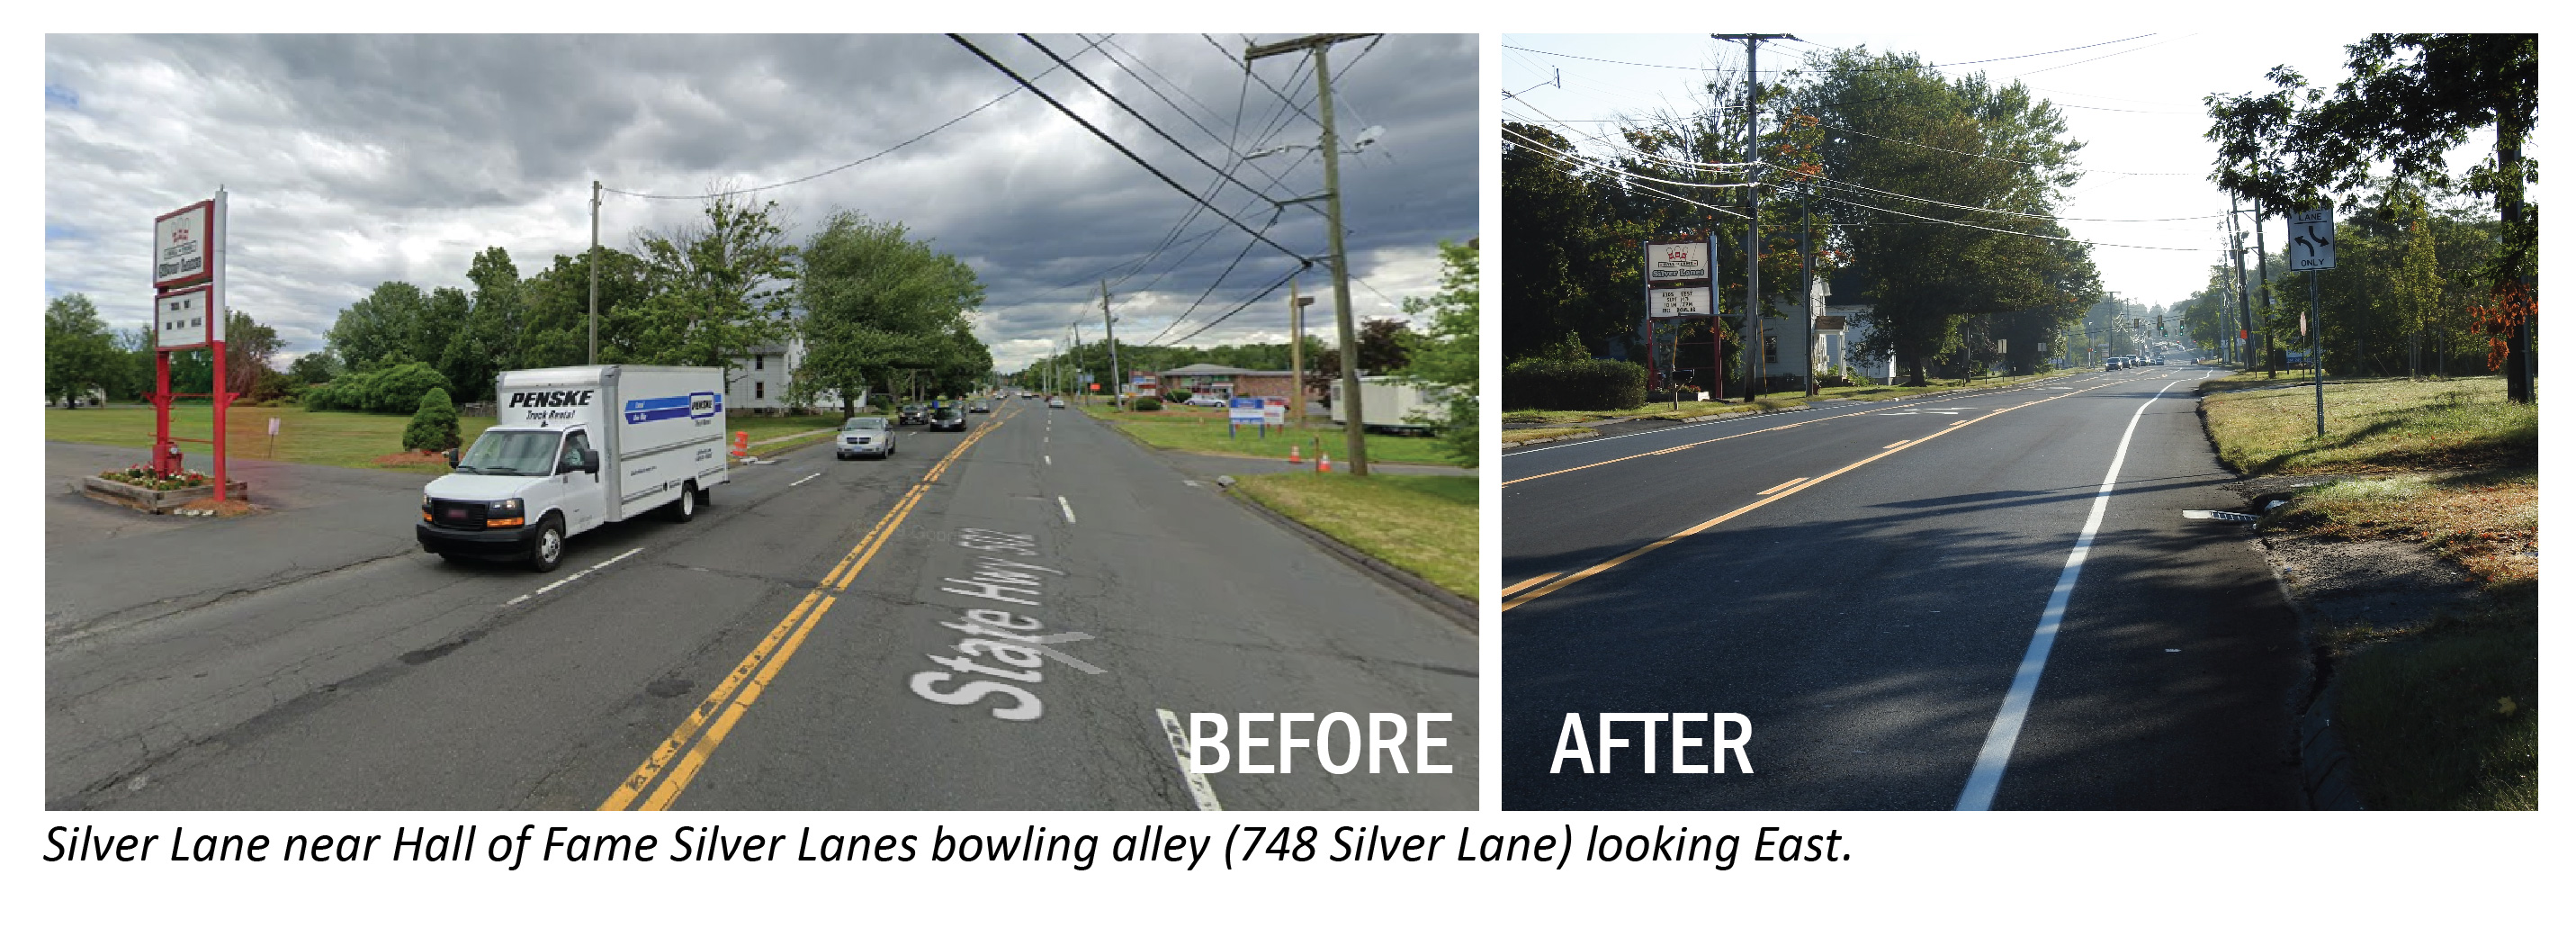 Before/After image of Silver Lane at Silver Lanes bowling alley looking east.